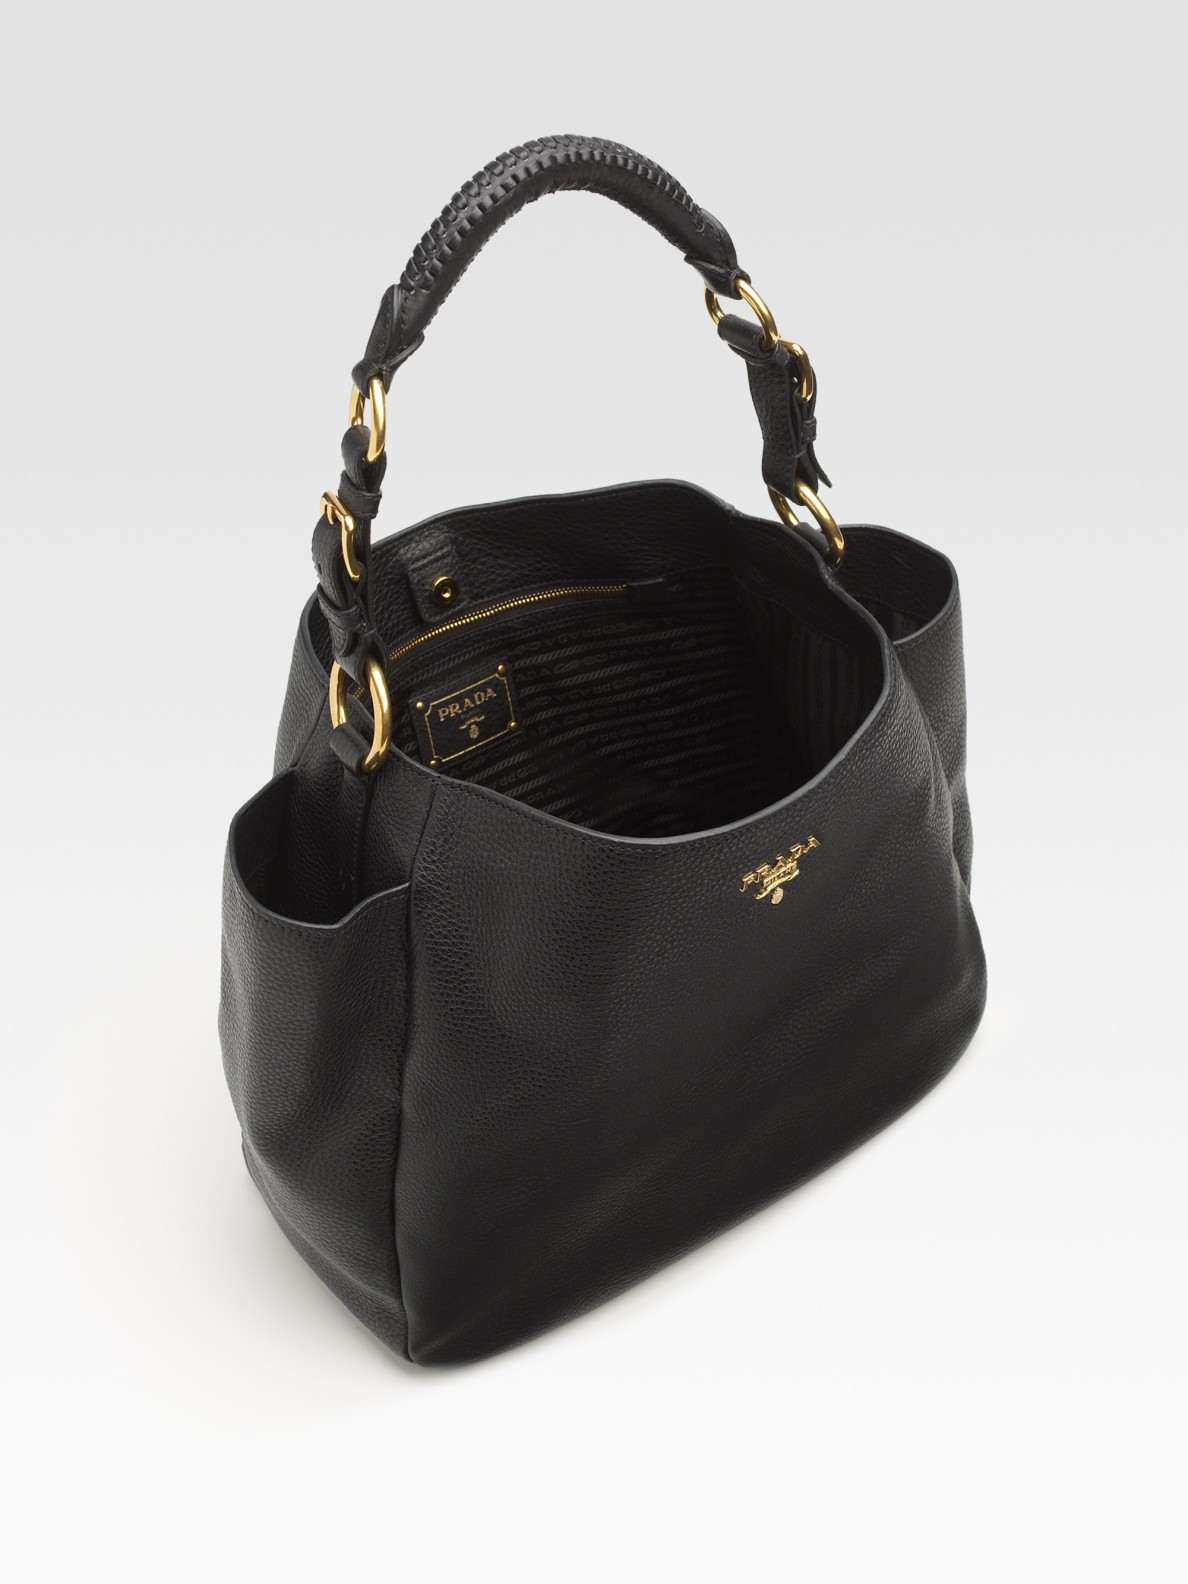 Prada Vitello Daino Hobo Bag in Black | Lyst